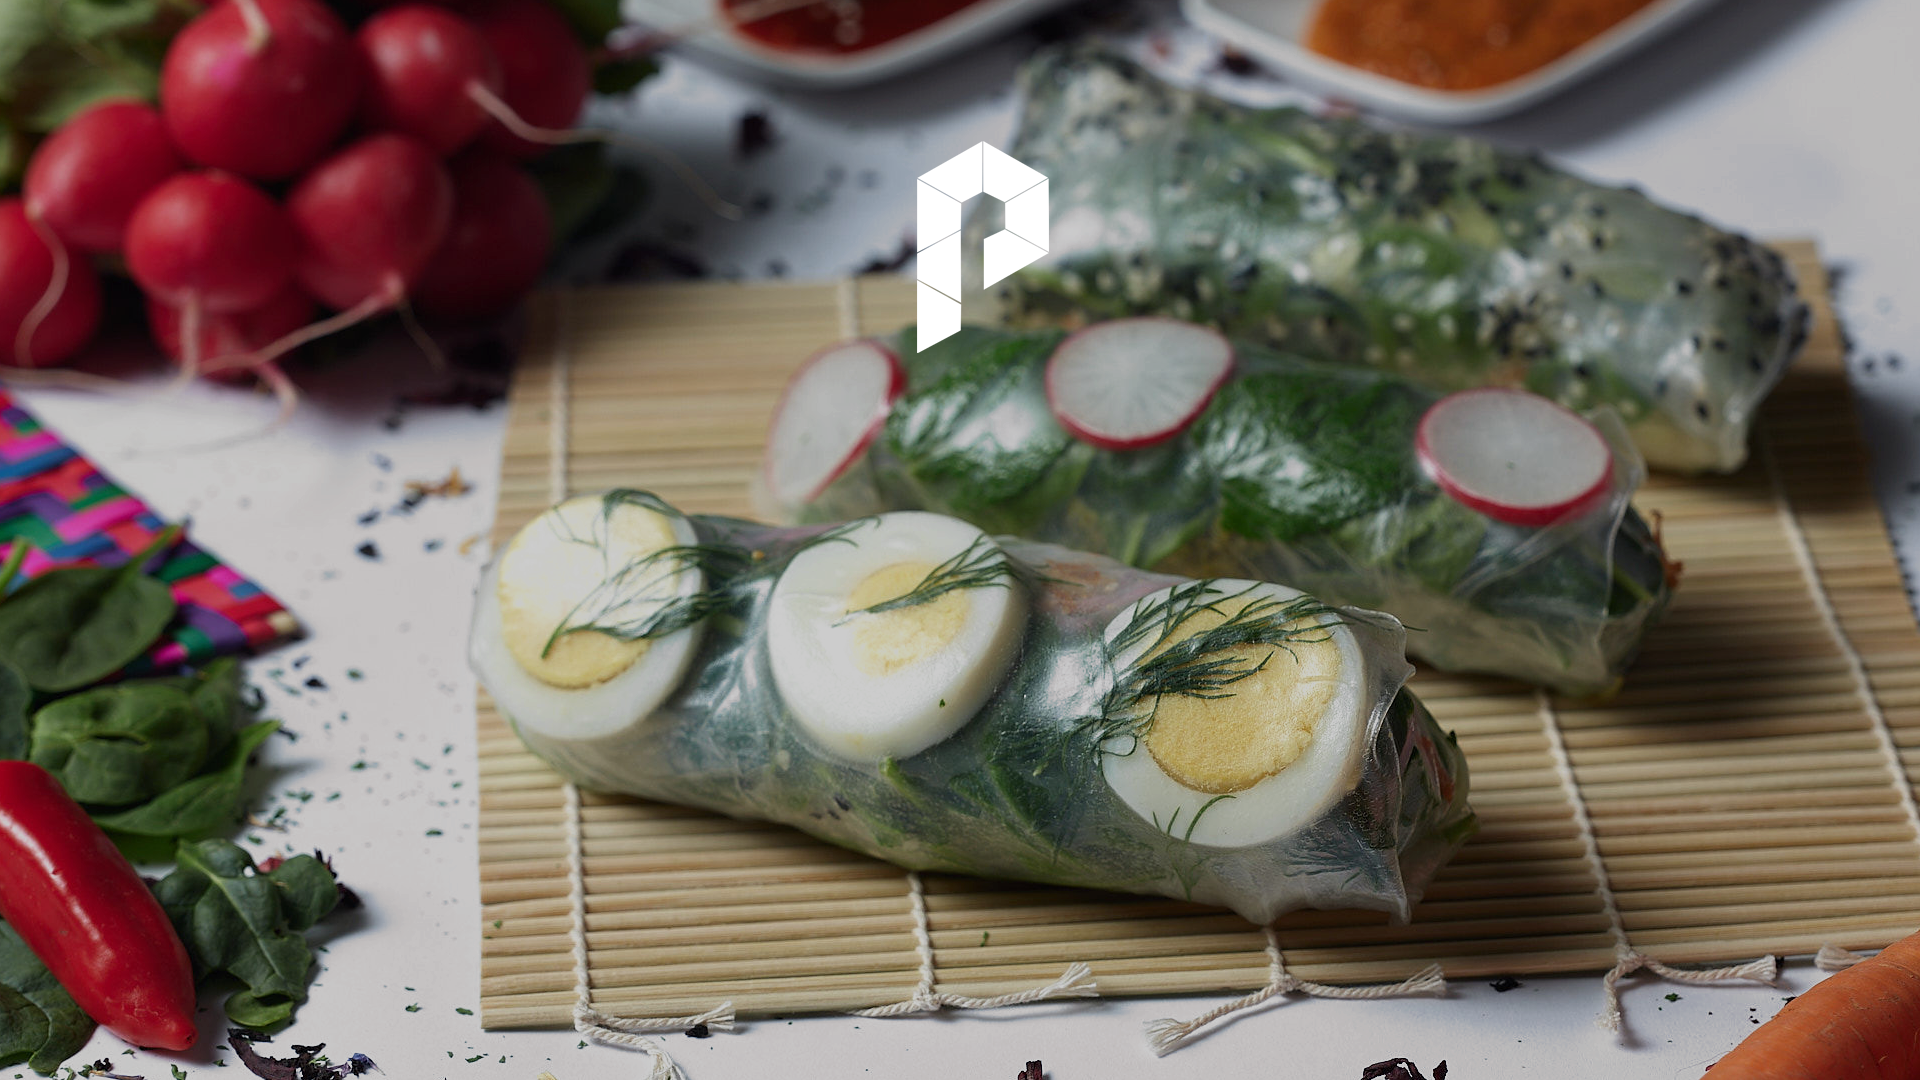 malay rice paper rolls - Tastily divine, gluten and sin free